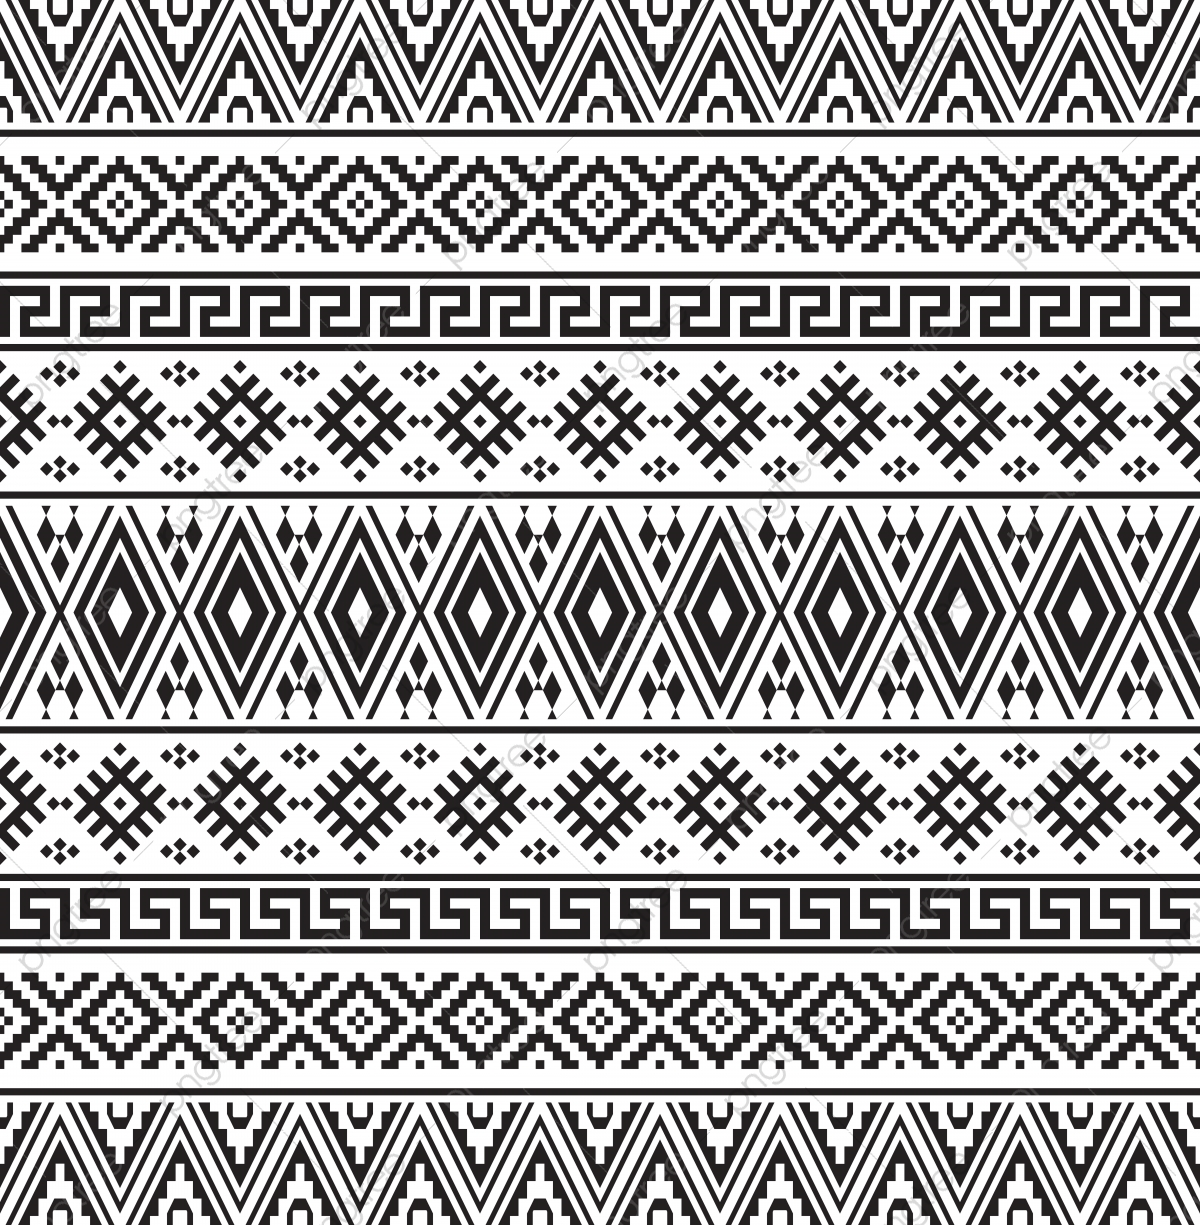 Geometric Ethnic Pattern Vector Black White Color Tribal Pattern Abstract African Antique Png And Vector With Transparent Background For Free Download,Pid Controller Design Tuning Parameters And Simulation For 4th Order Plant